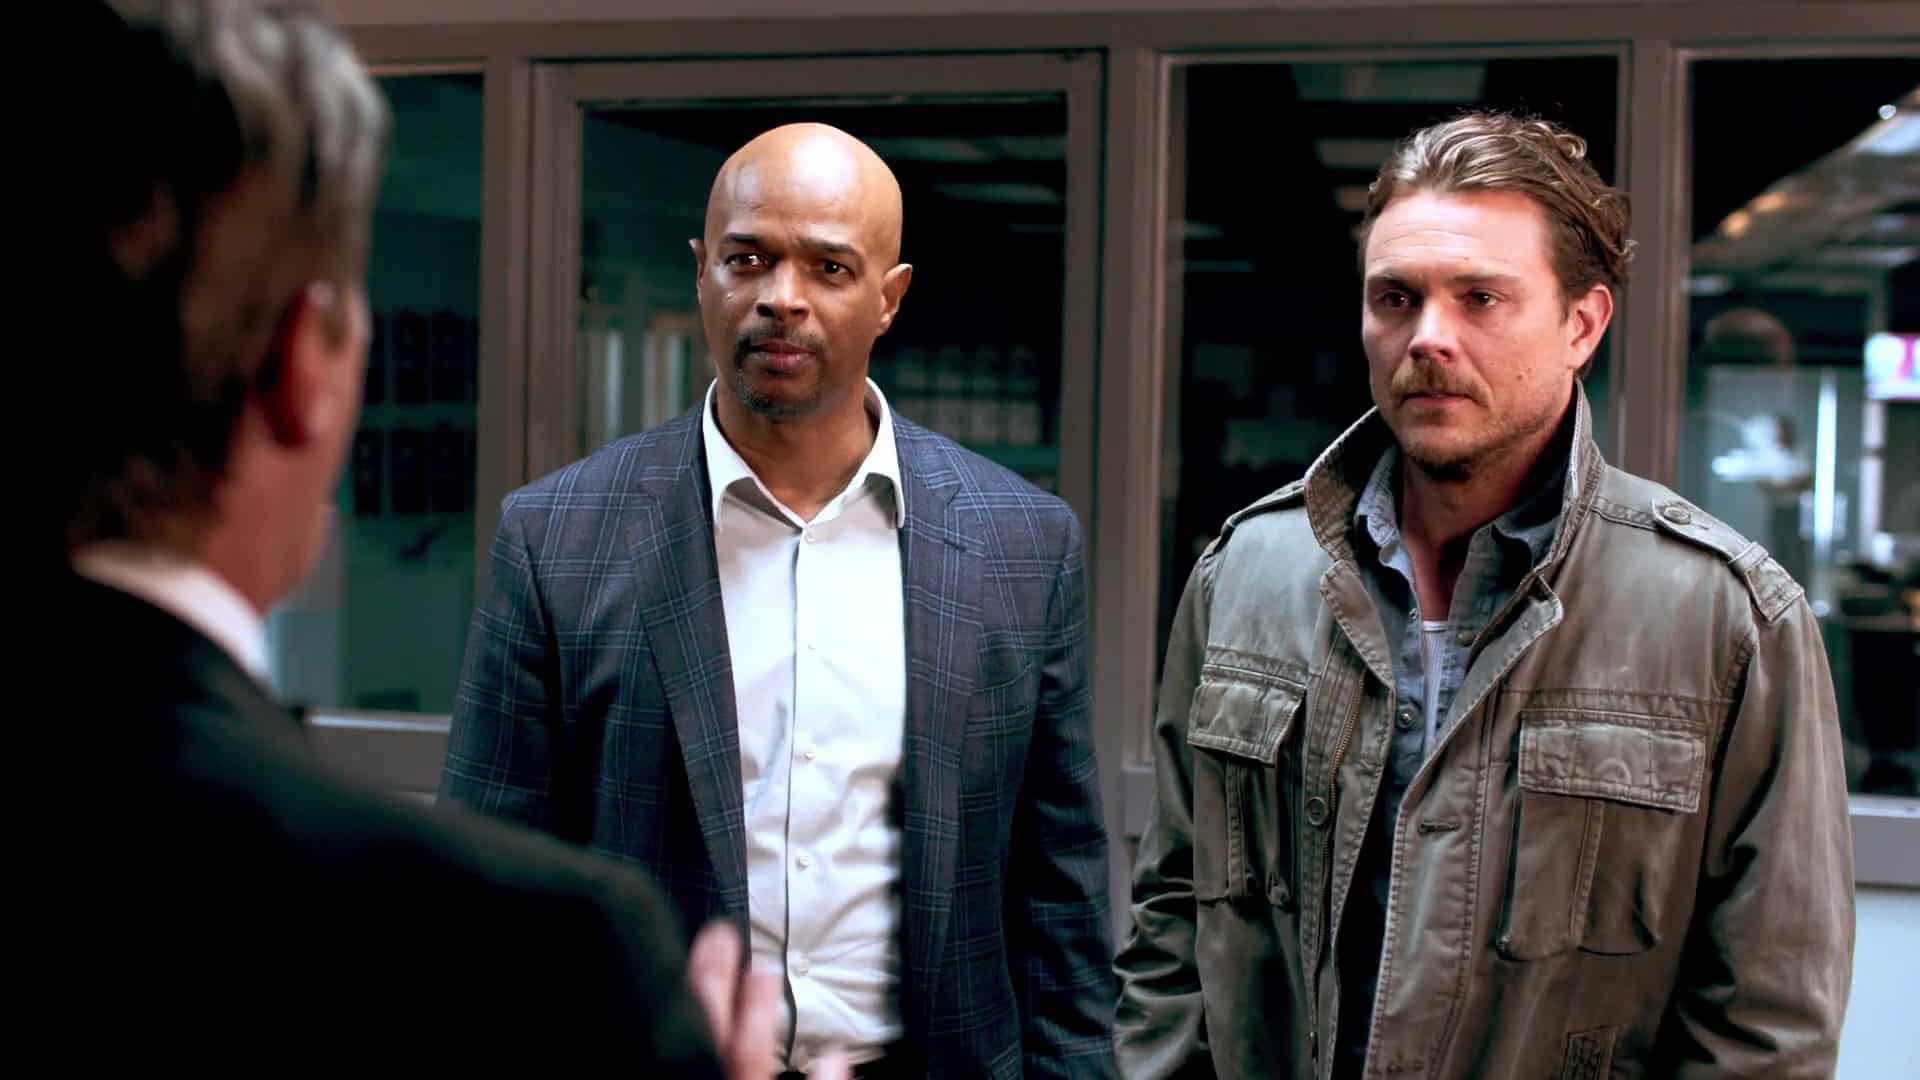 Lethal Weapon is Now an Awesome TV Show